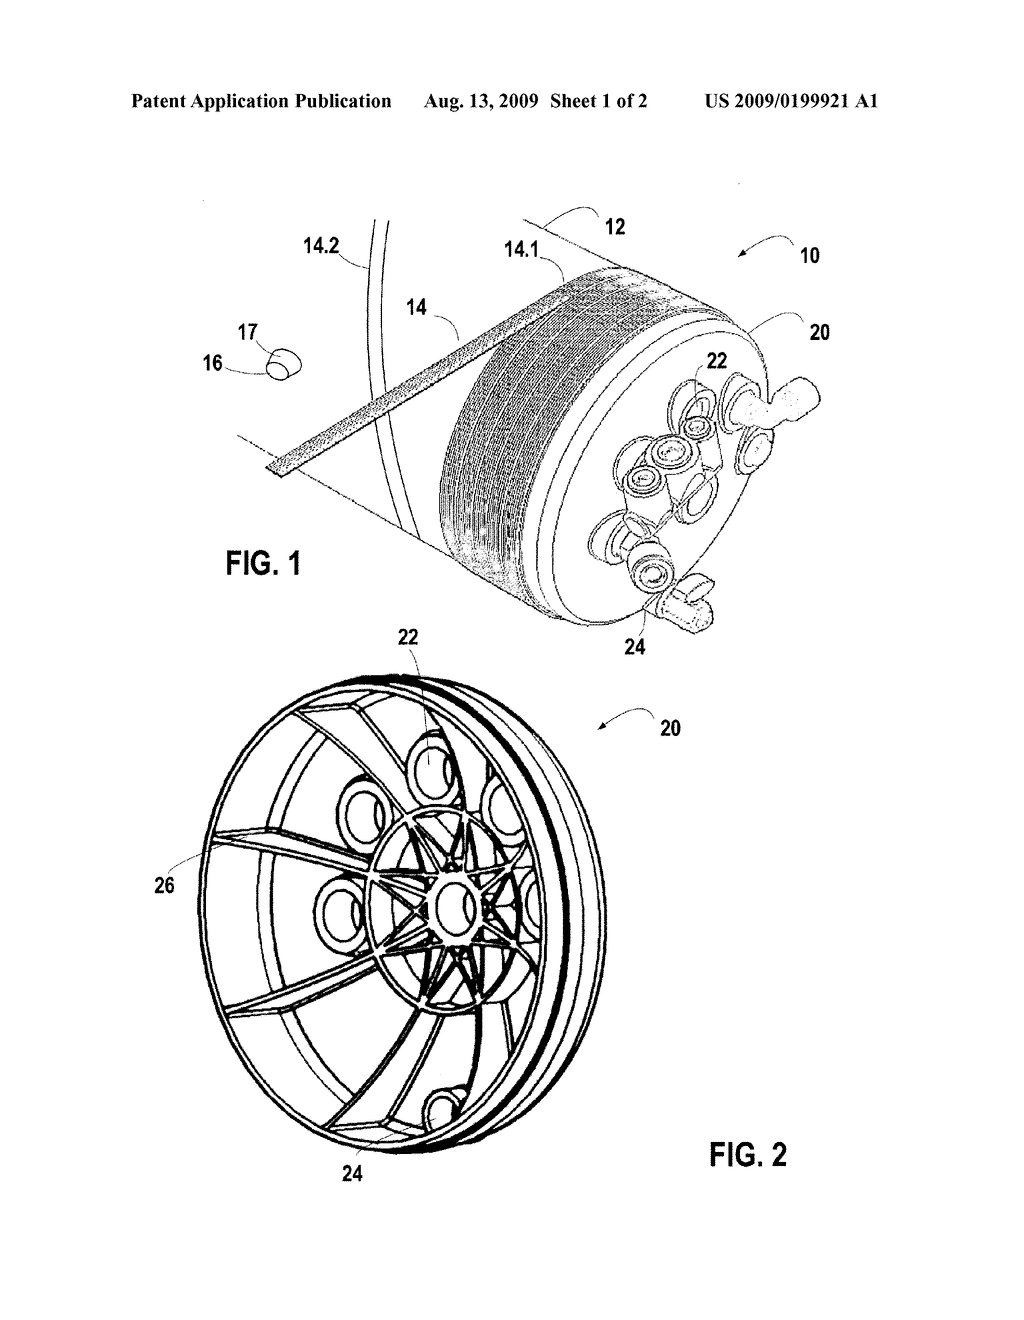 hight resolution of composite air tank for vehicle air brake and method for manufacturing diagram schematic and image 02